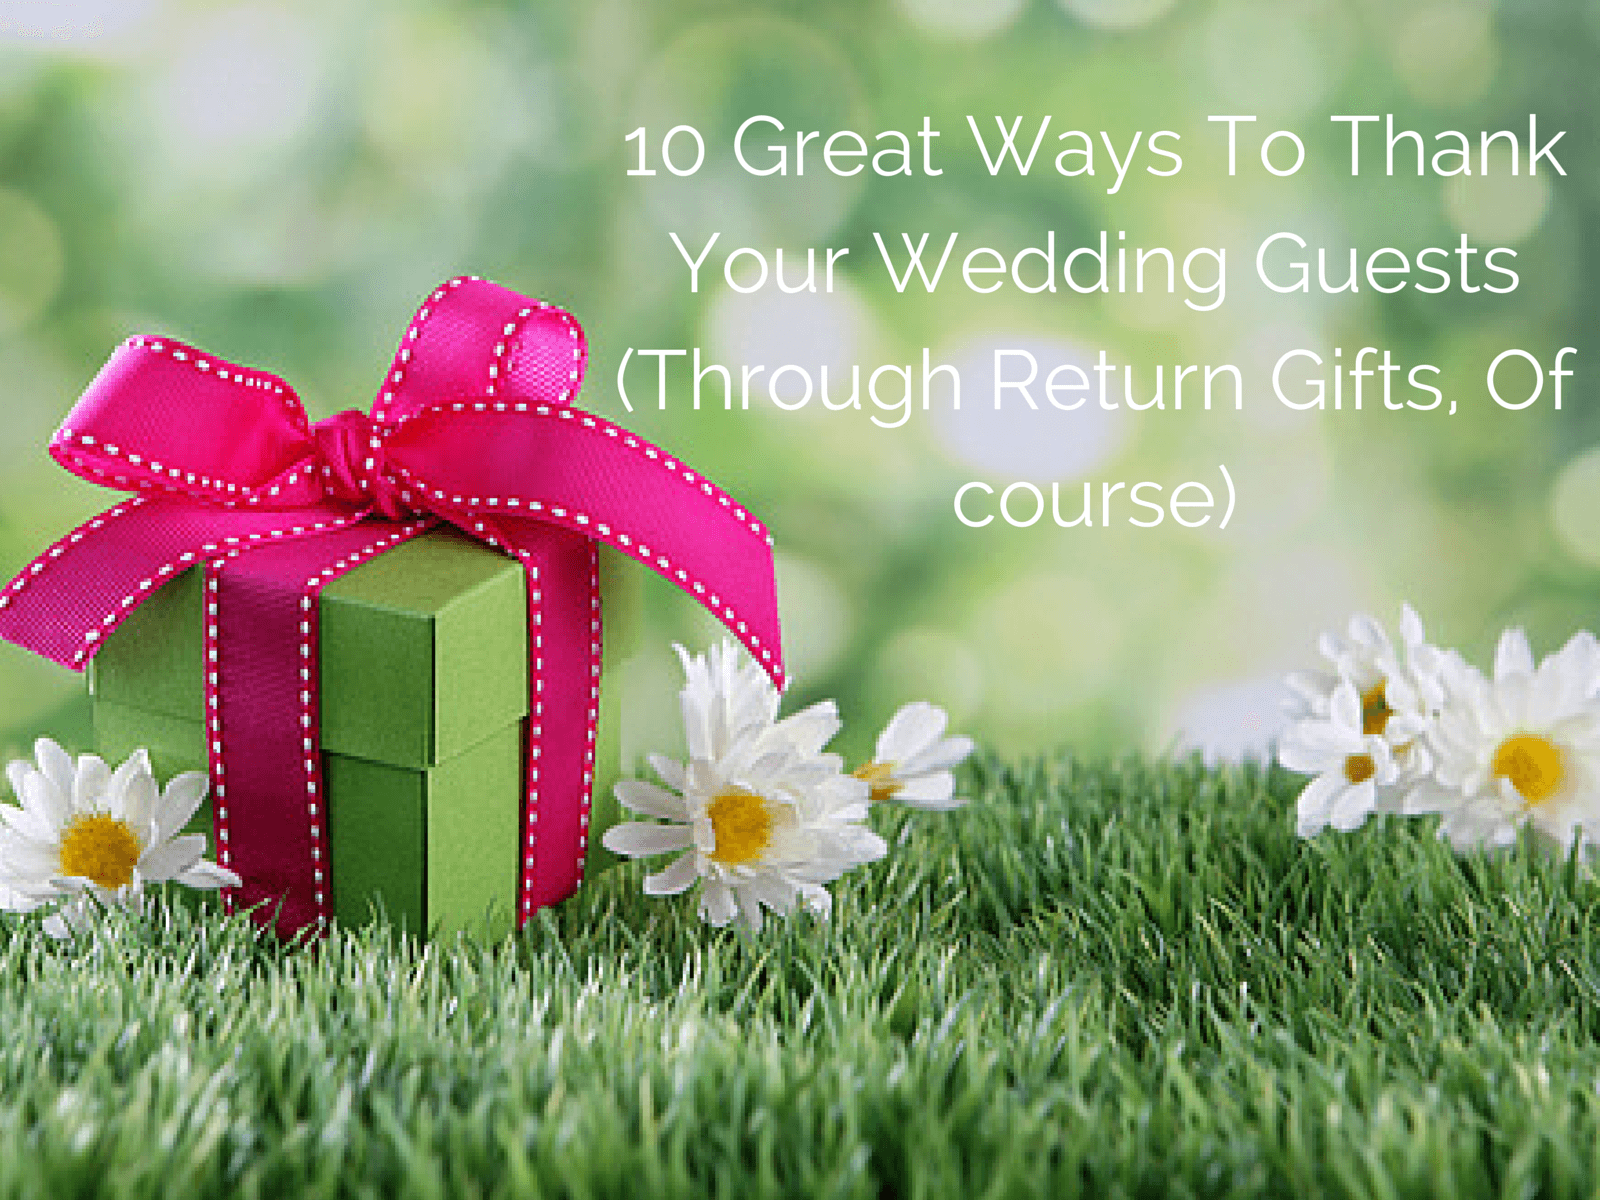 How Does A Wedding Gift List Work : Wedding Gift Ideas For Guests:10 Great Ways to Thank Them May 5, 2015 ...